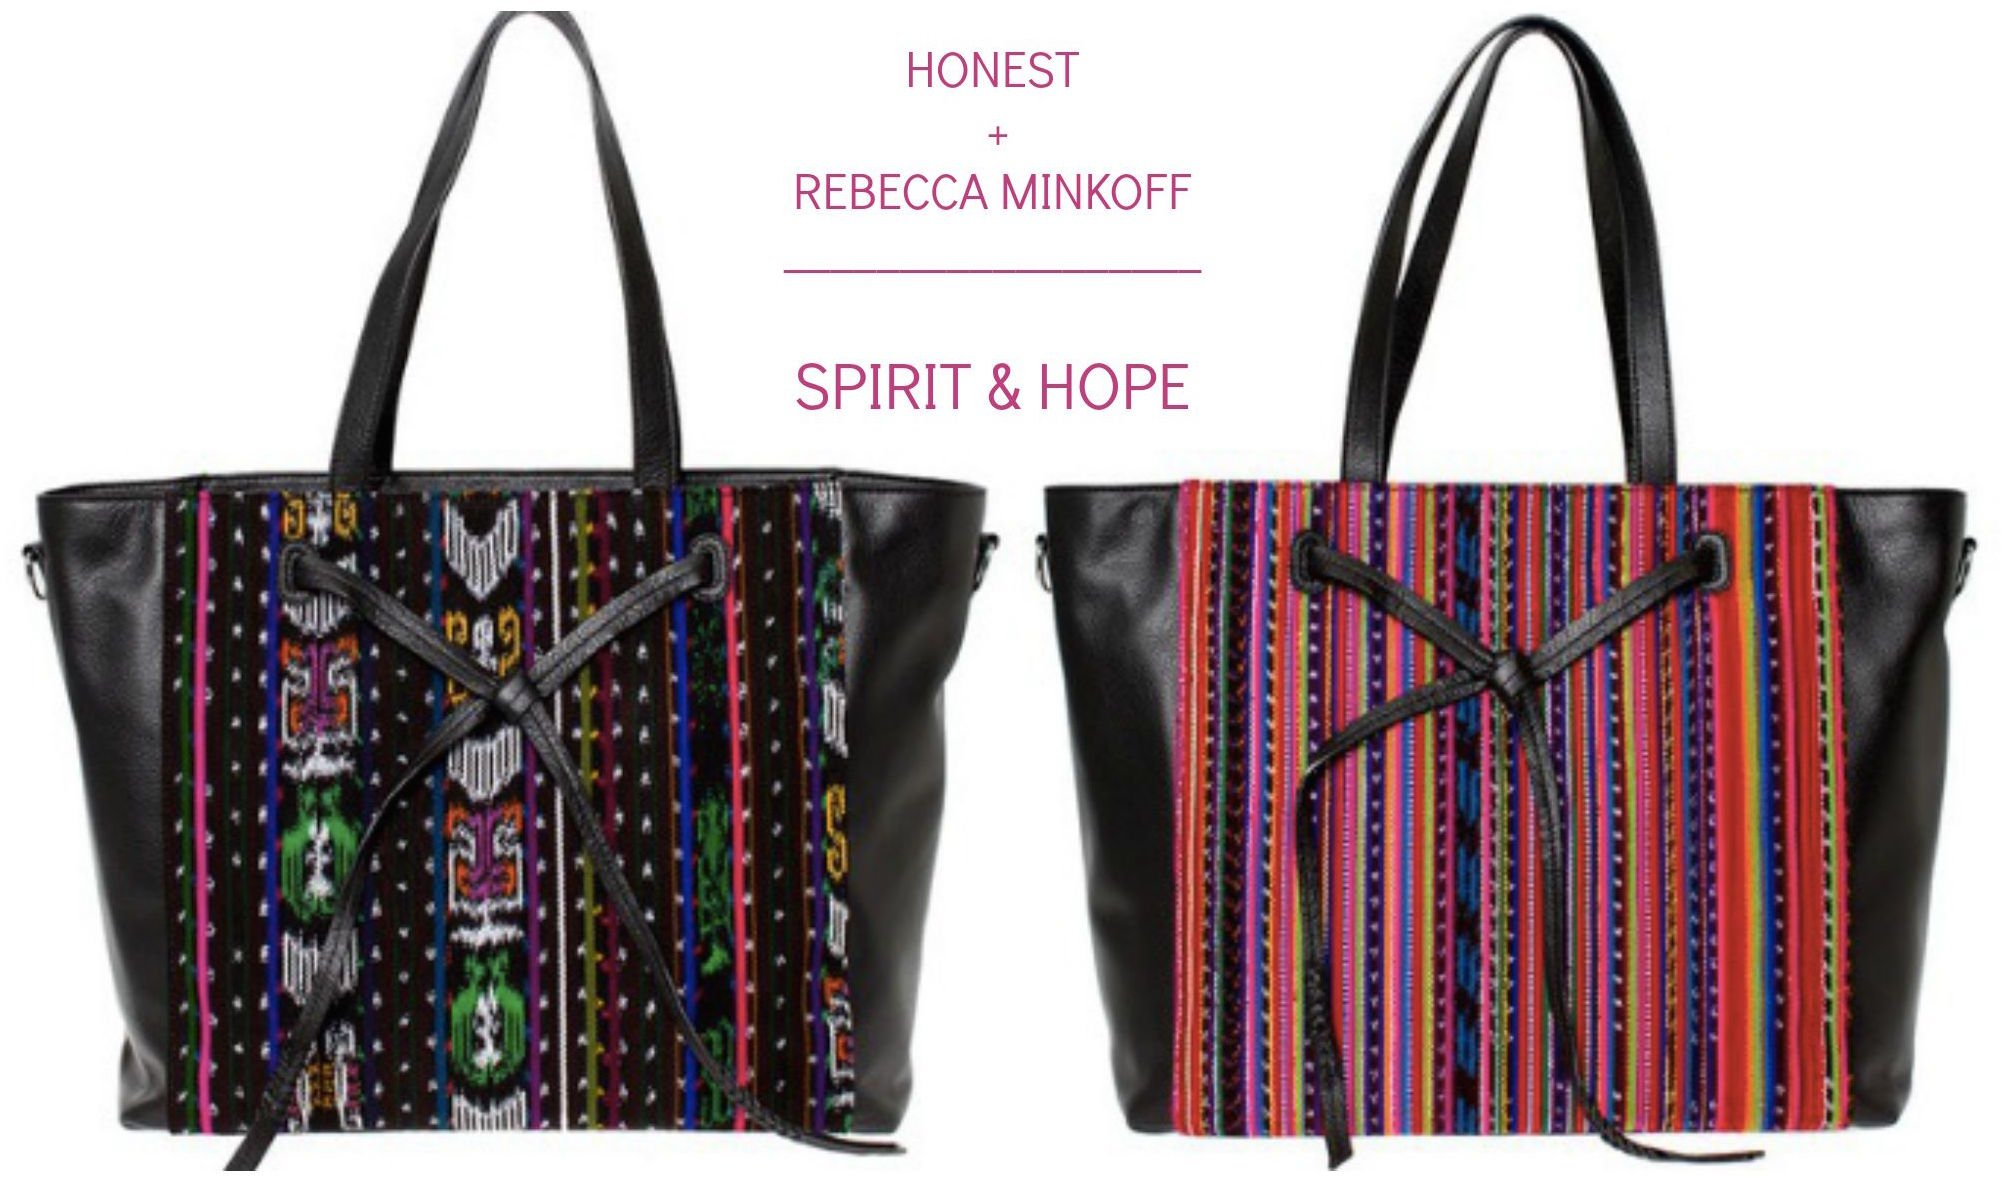 The Honest Company Collaboration with Rebecca Minkoff